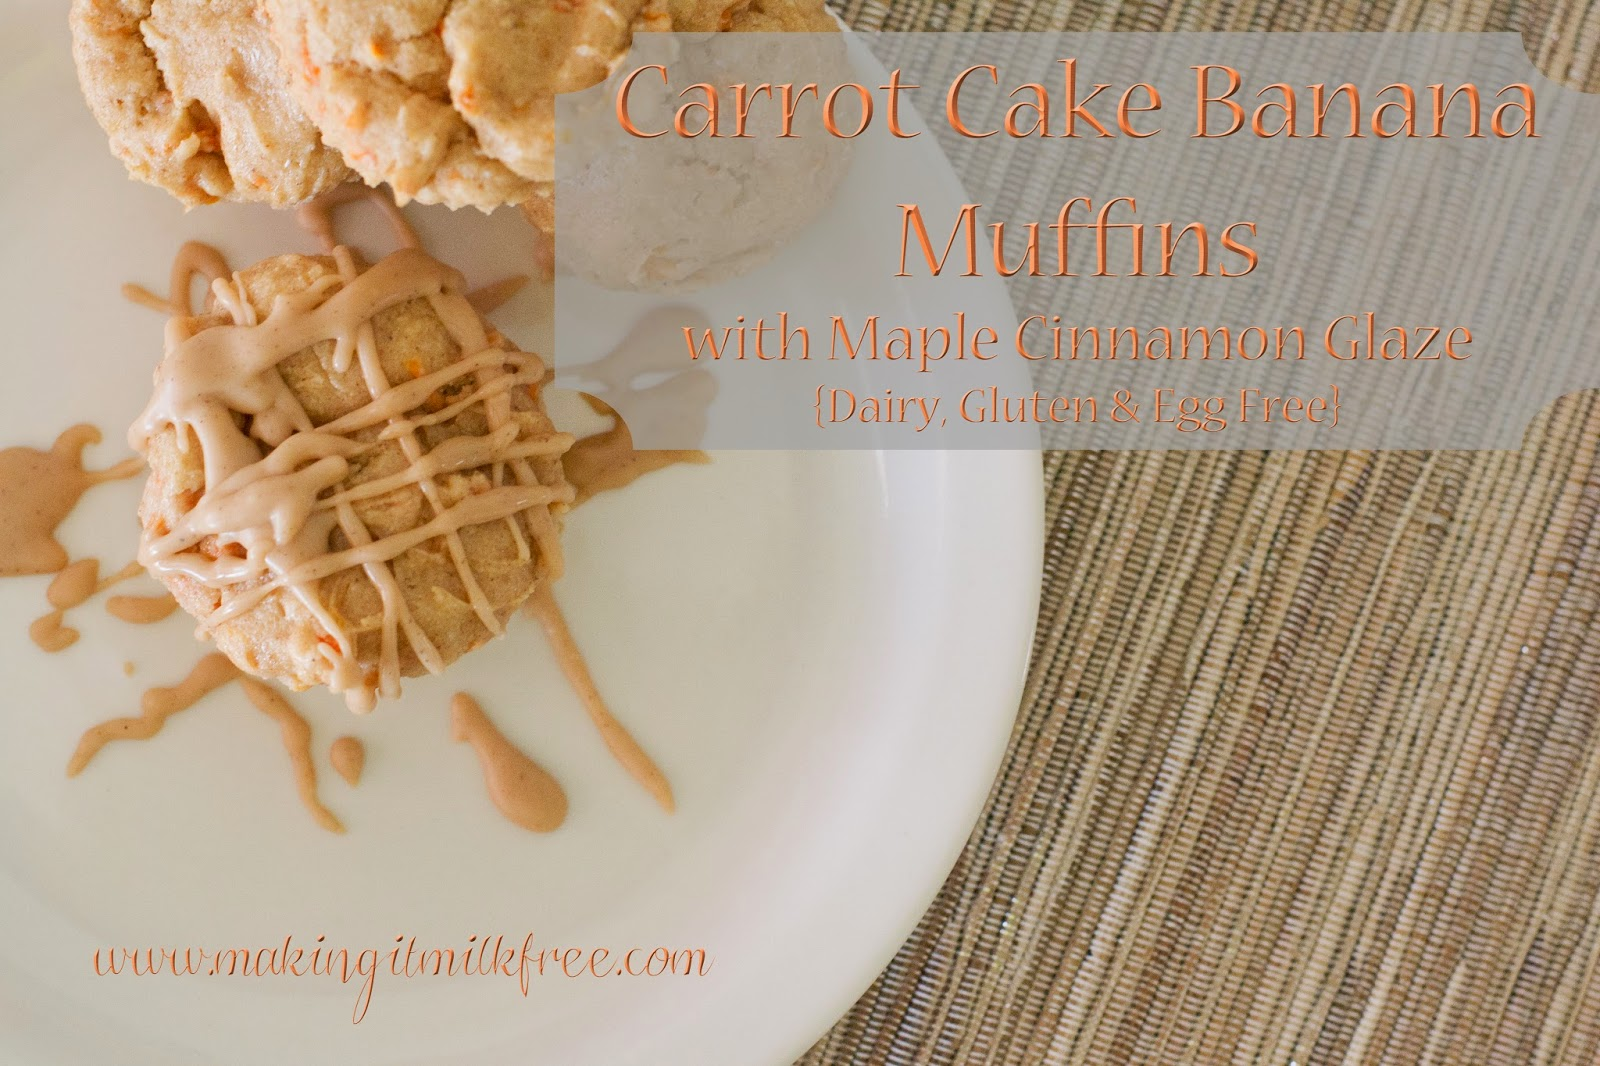 gluten-free, dairy-free, carrot cake, muffins, recipes